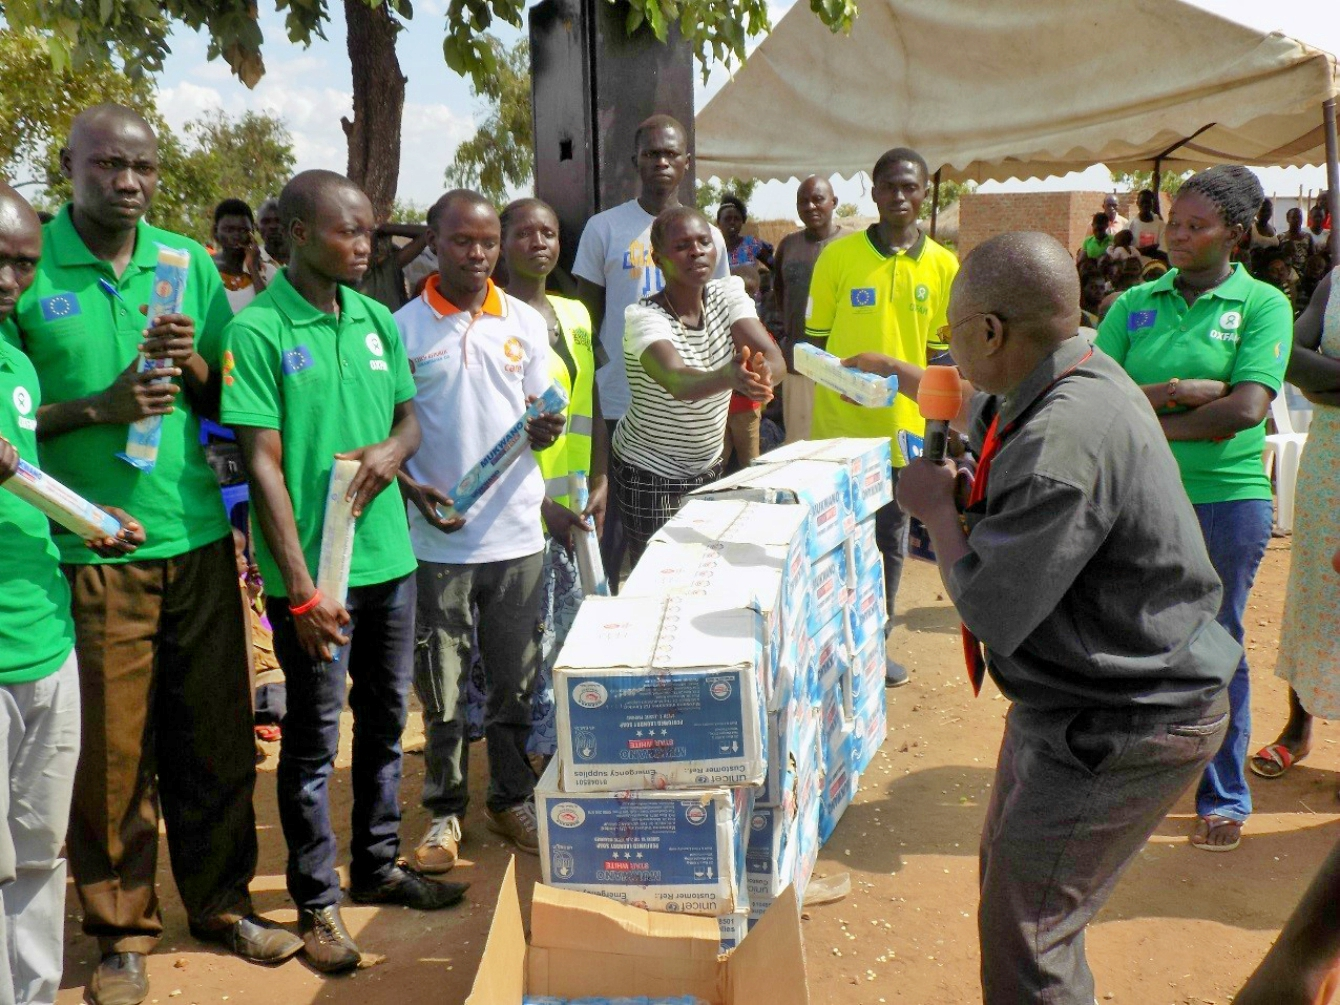 Hygiene promotion champions awarded for their excellence during World Toilet Day celebration.Photo credit: Oxfam